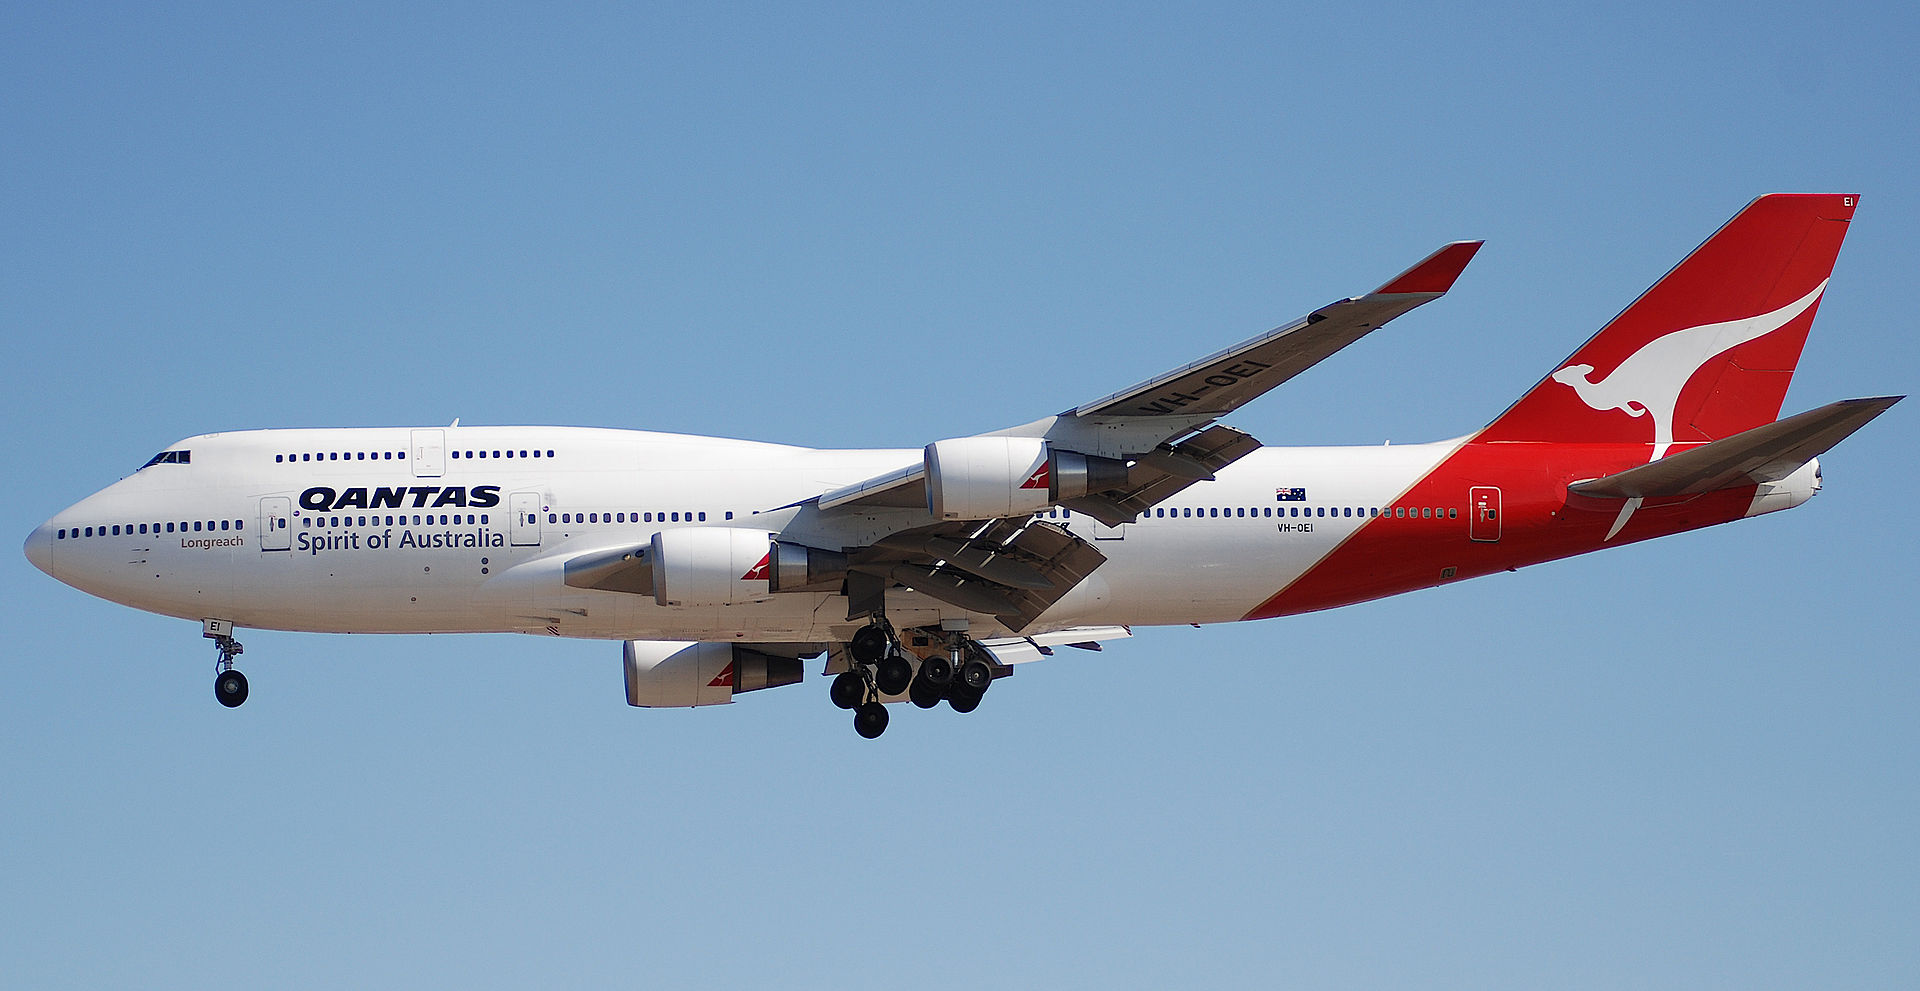 Qantas launches free, in-flight Wi-Fi